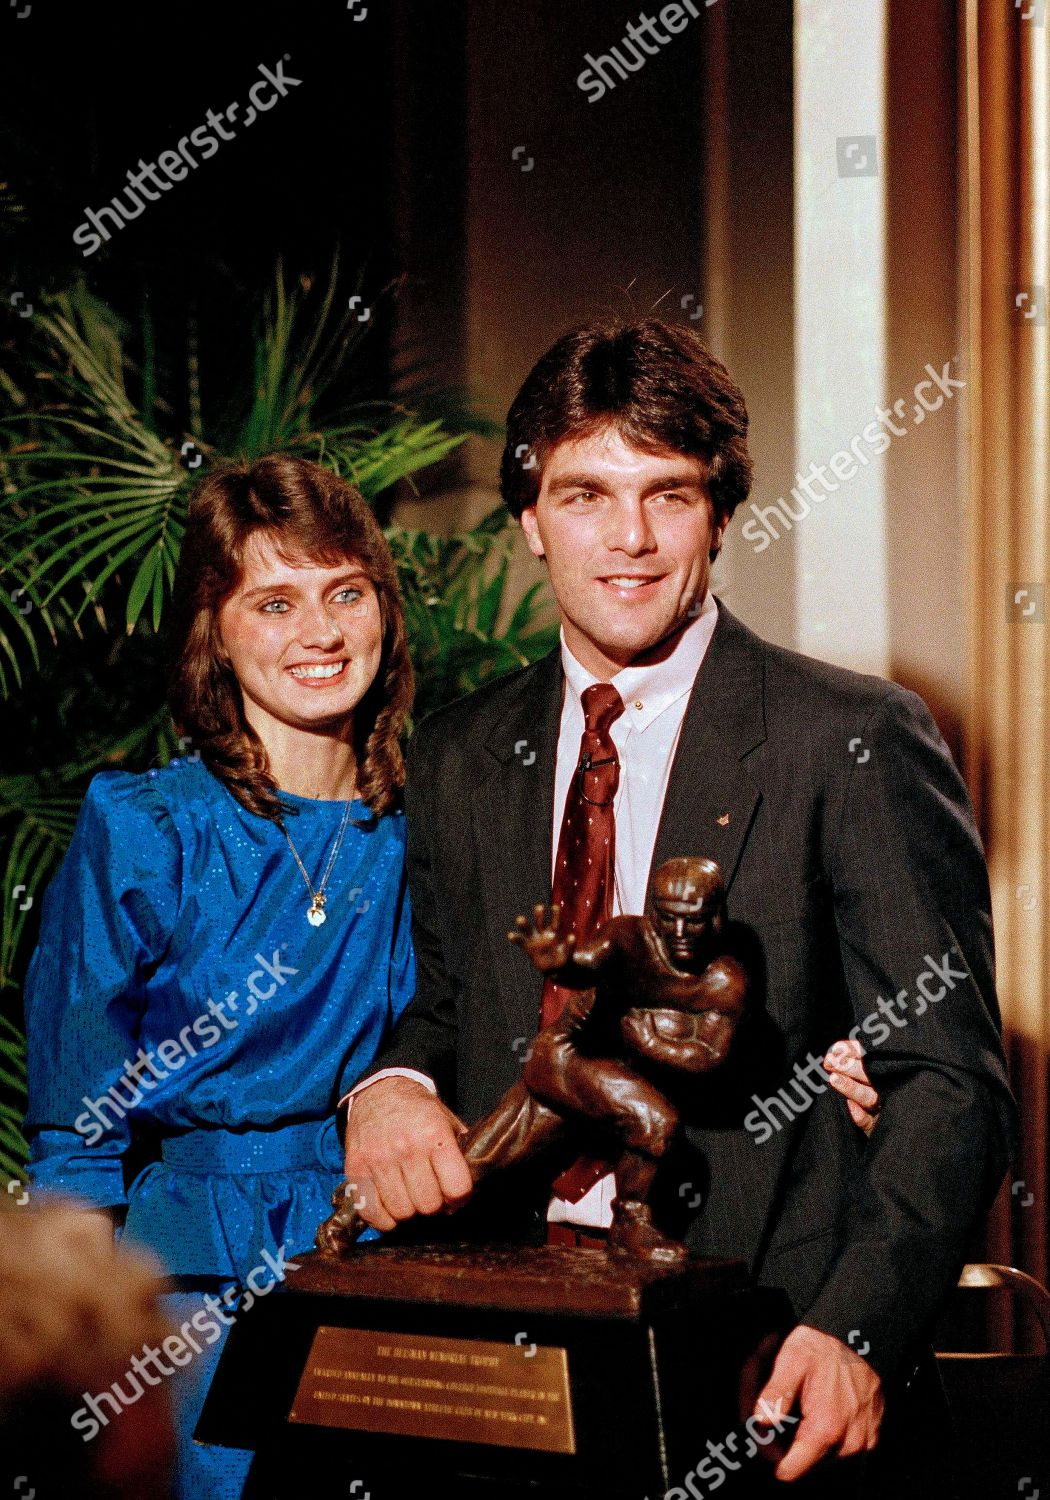 Doug Flutie Laurie Fortier Heisman Trophy winner Editorial